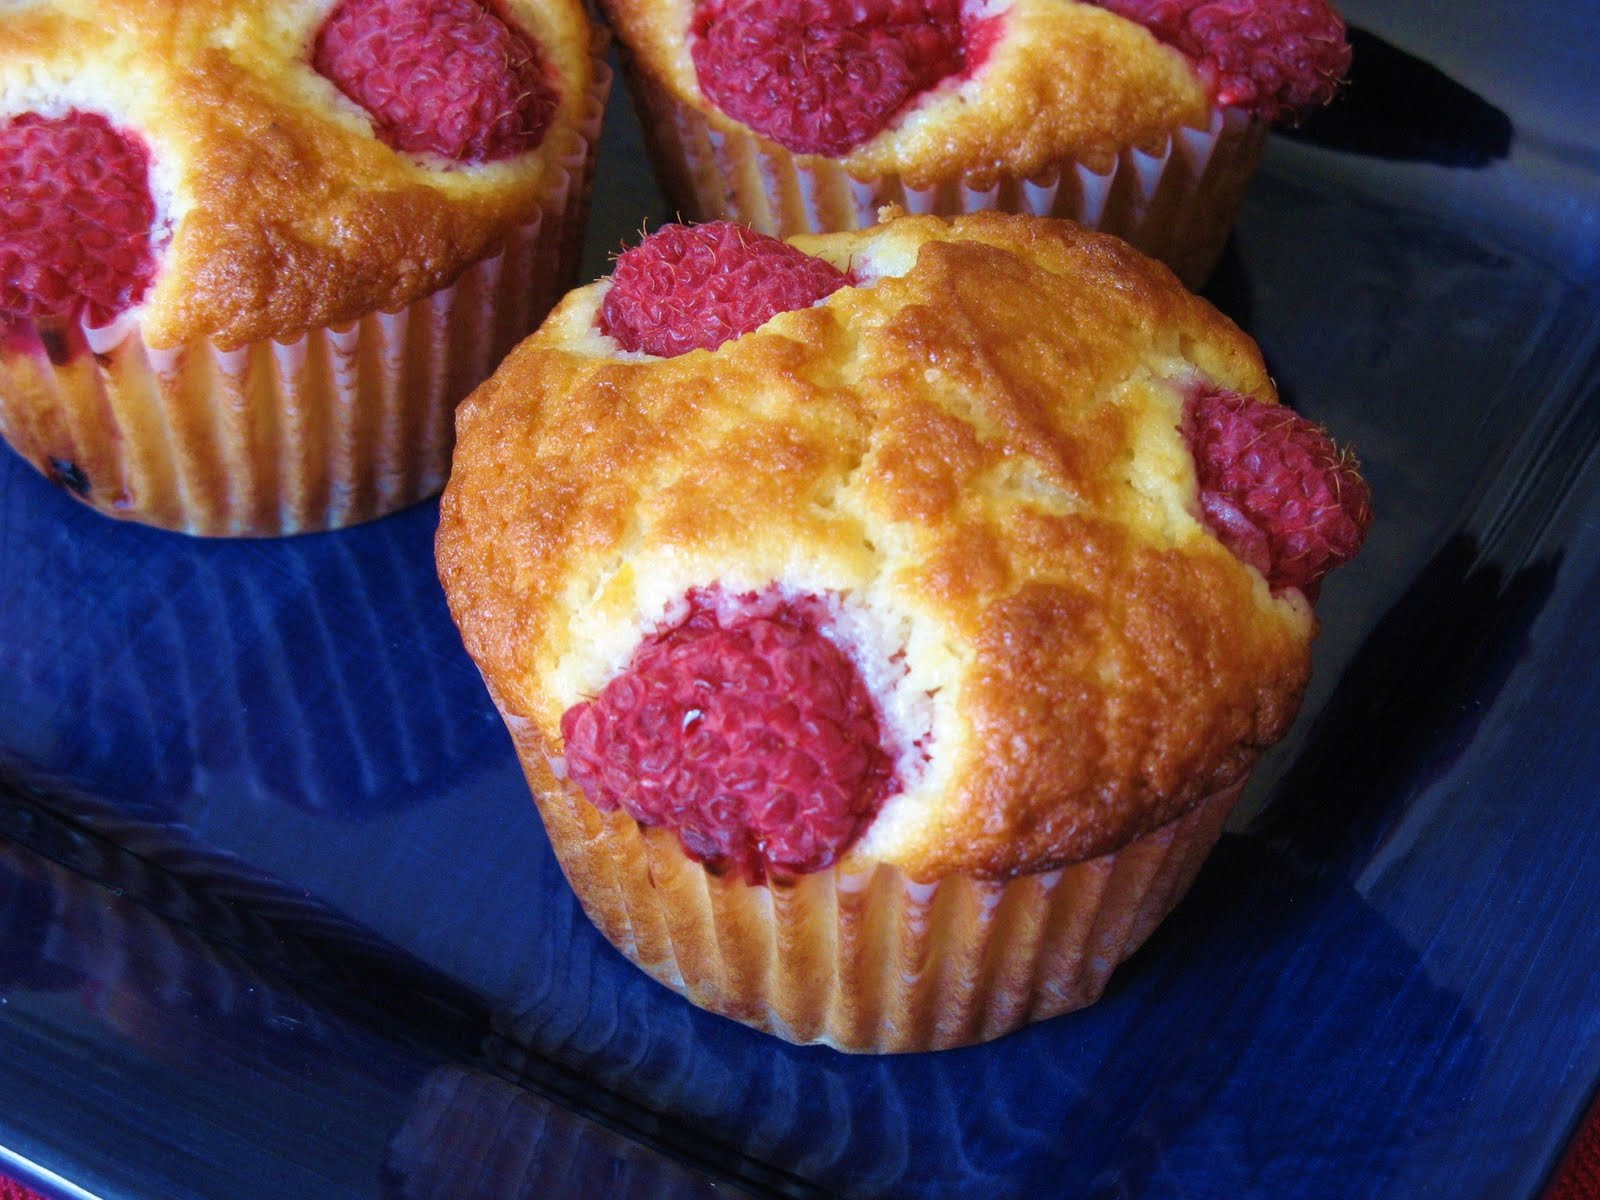 The Well-Fed Newlyweds: Raspberry-Topped Lemon Muffins